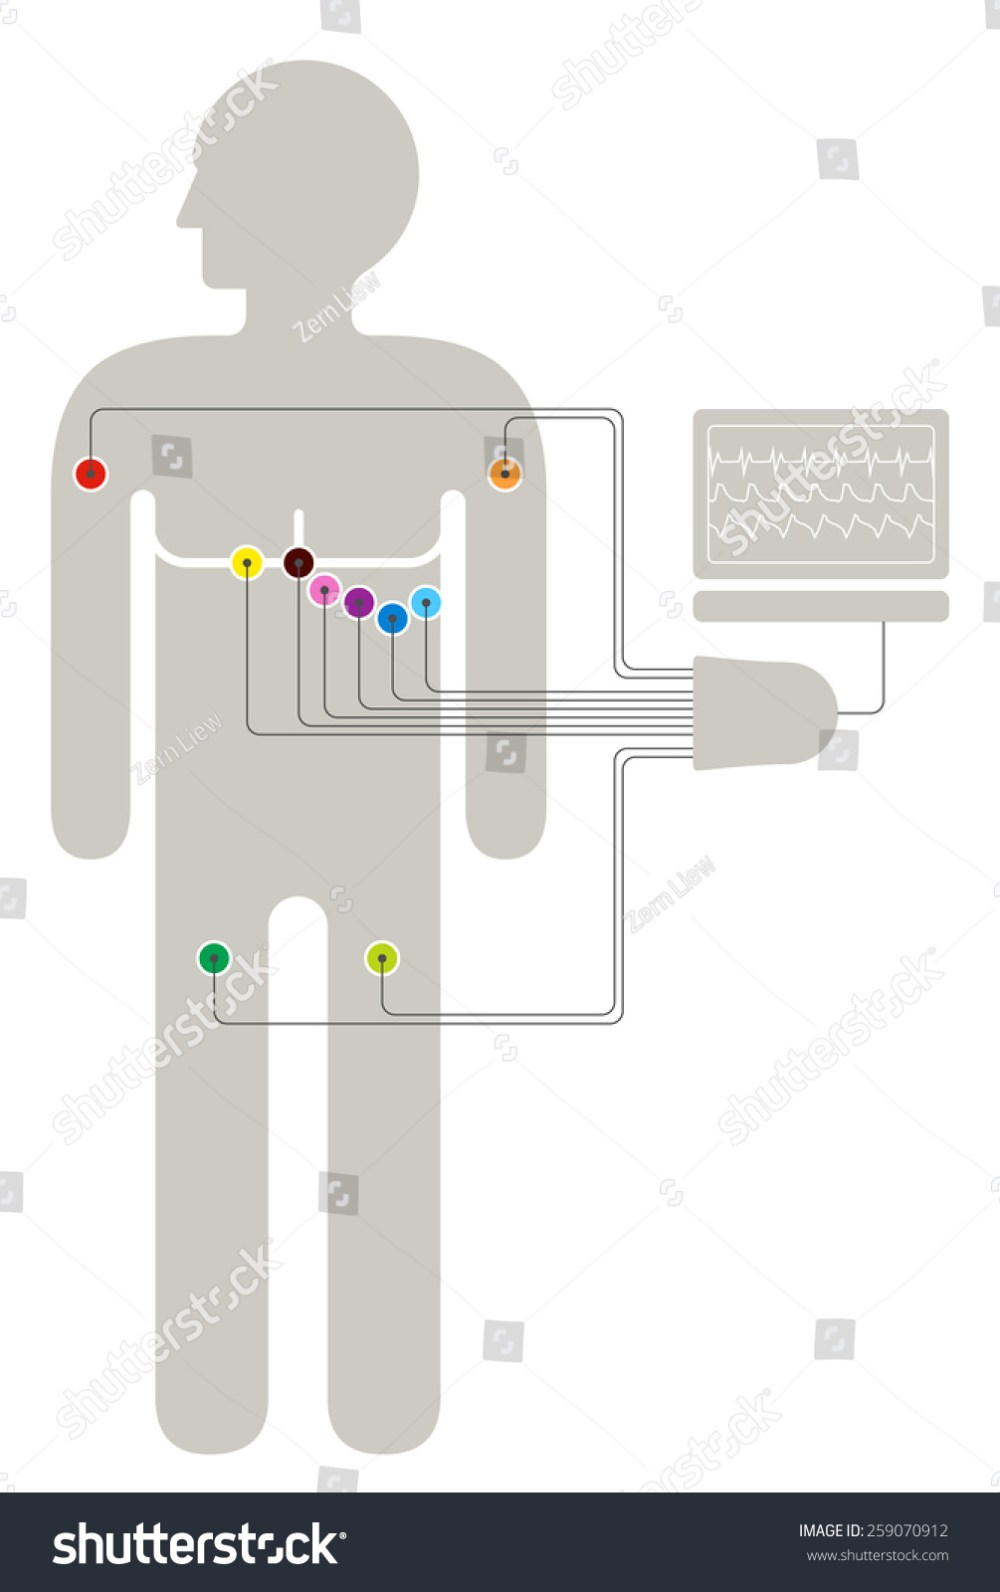 medium resolution of ecg wiring diagram showing 6 2 2 colour coded sensors connected to a